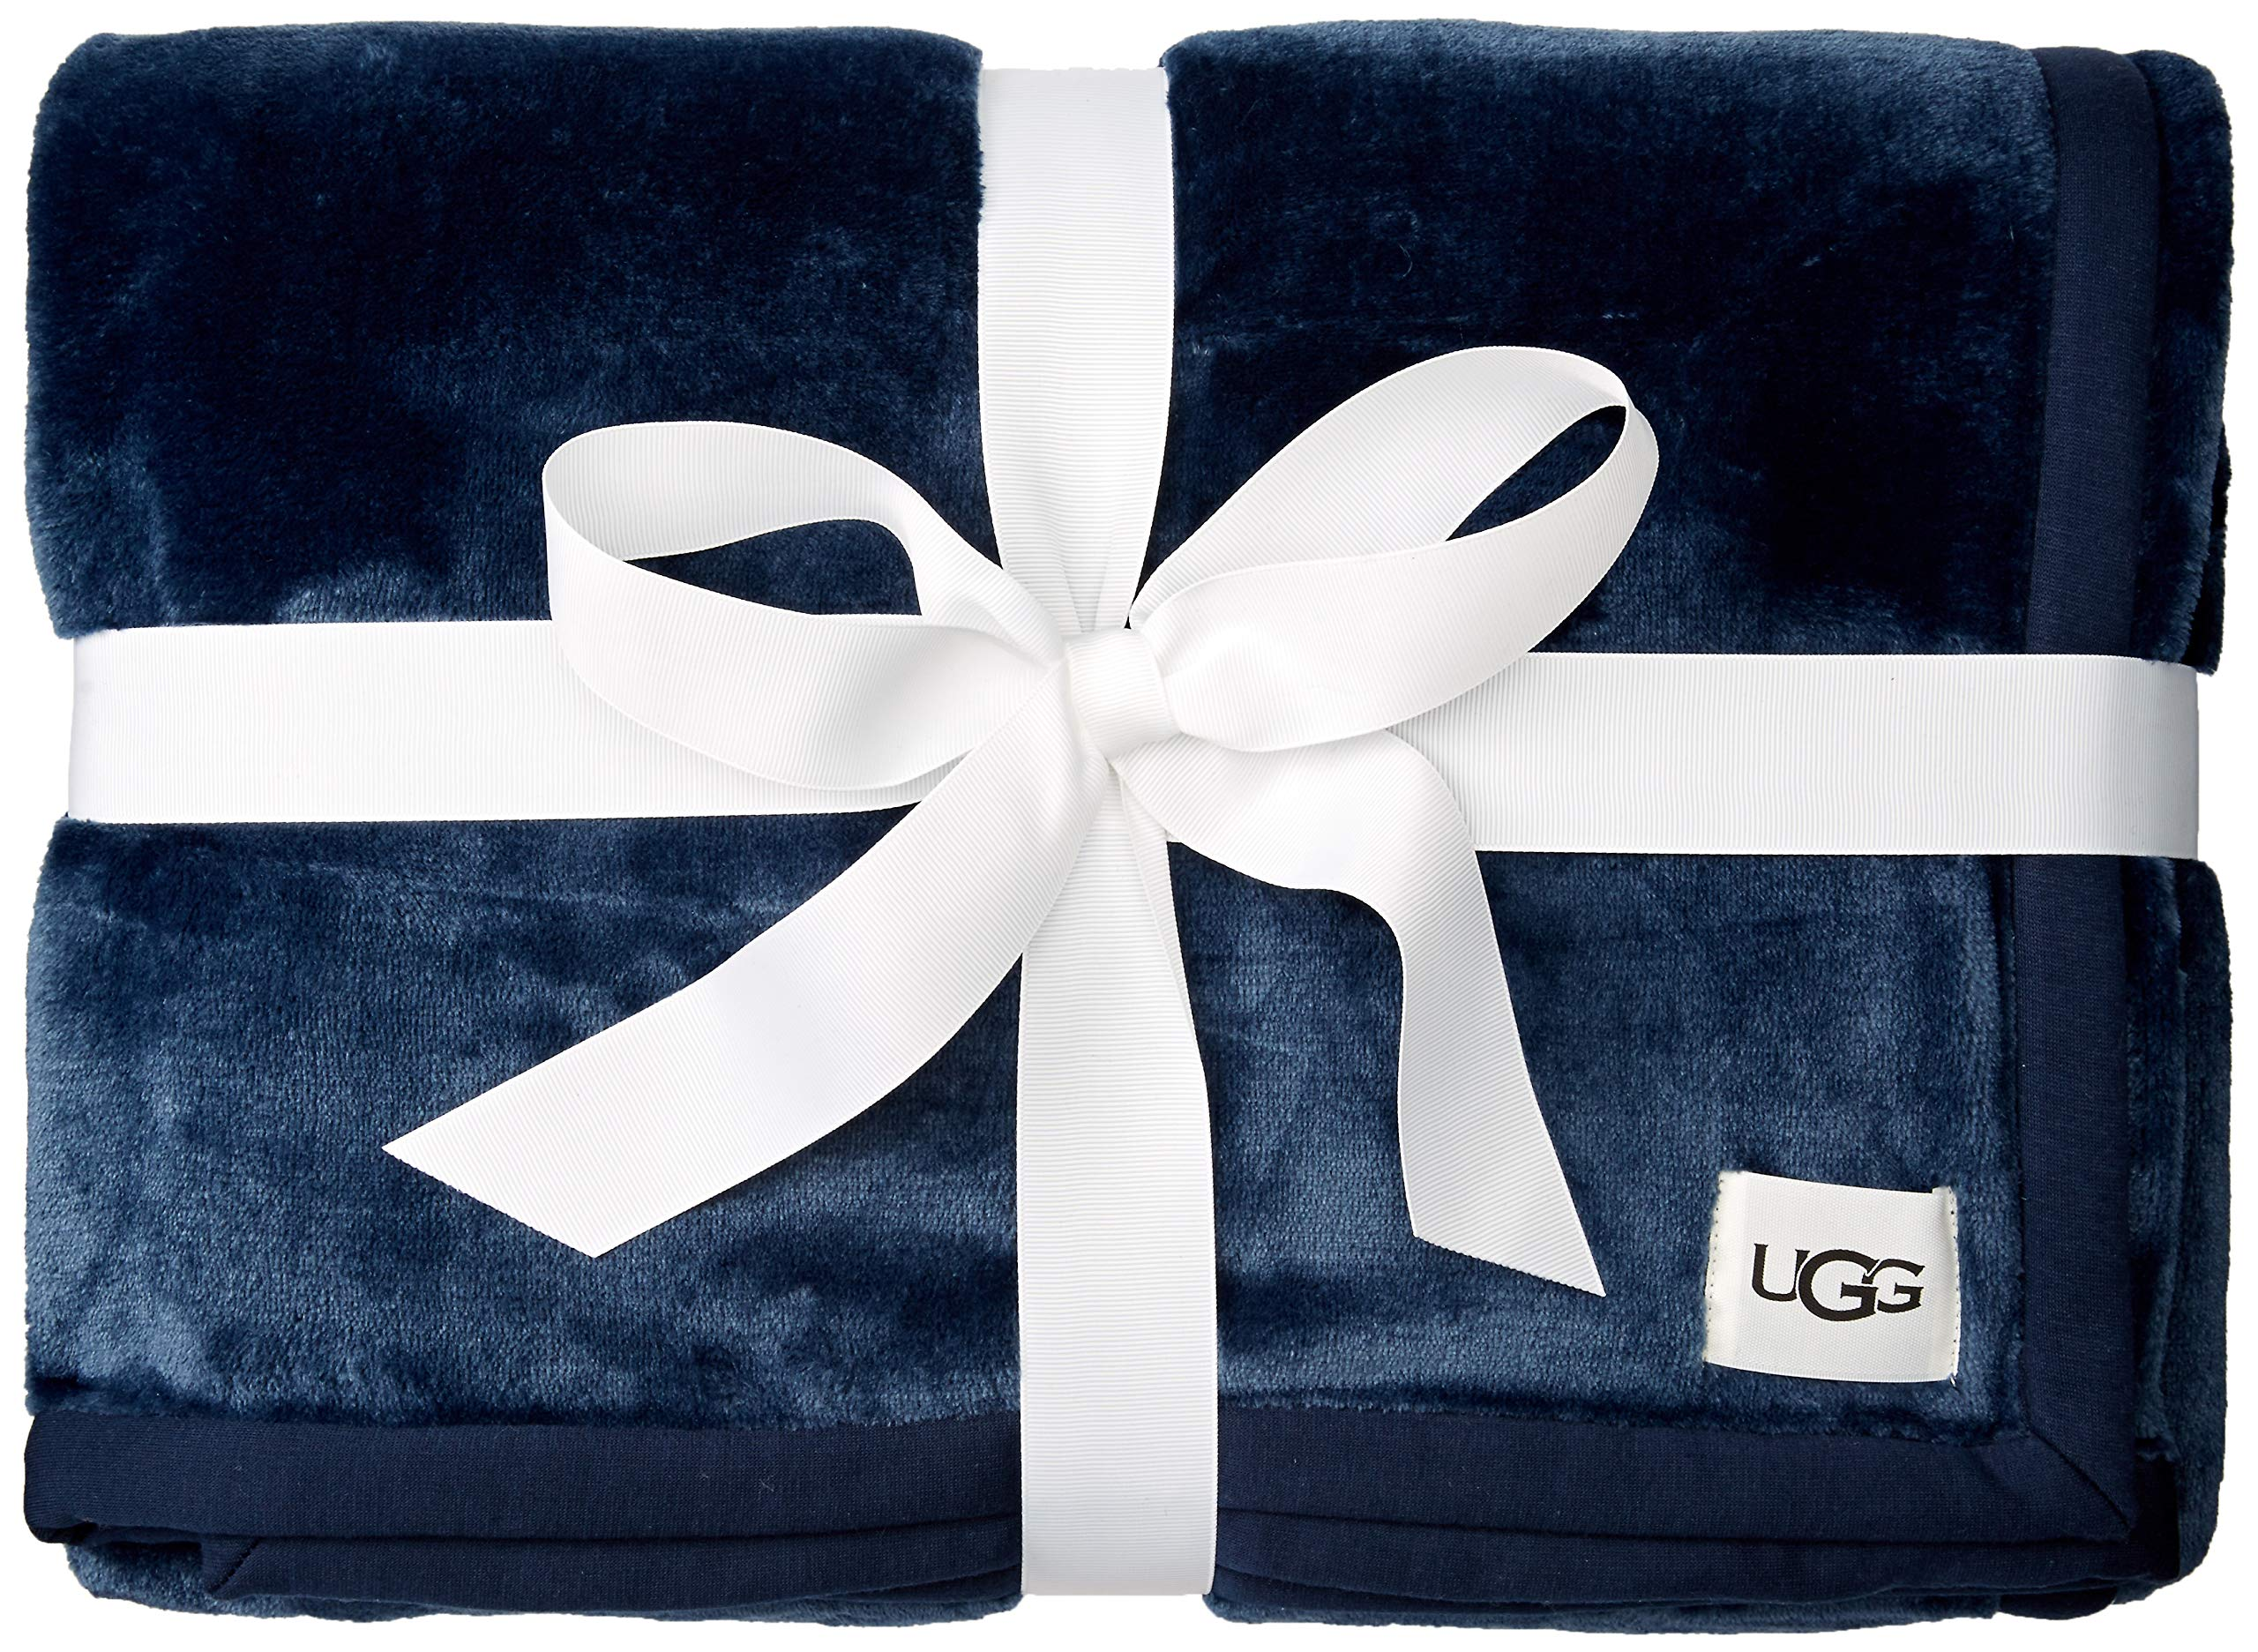 UGG Unisex-Adult's Duffield Throw II, Indigo, One Size by UGG